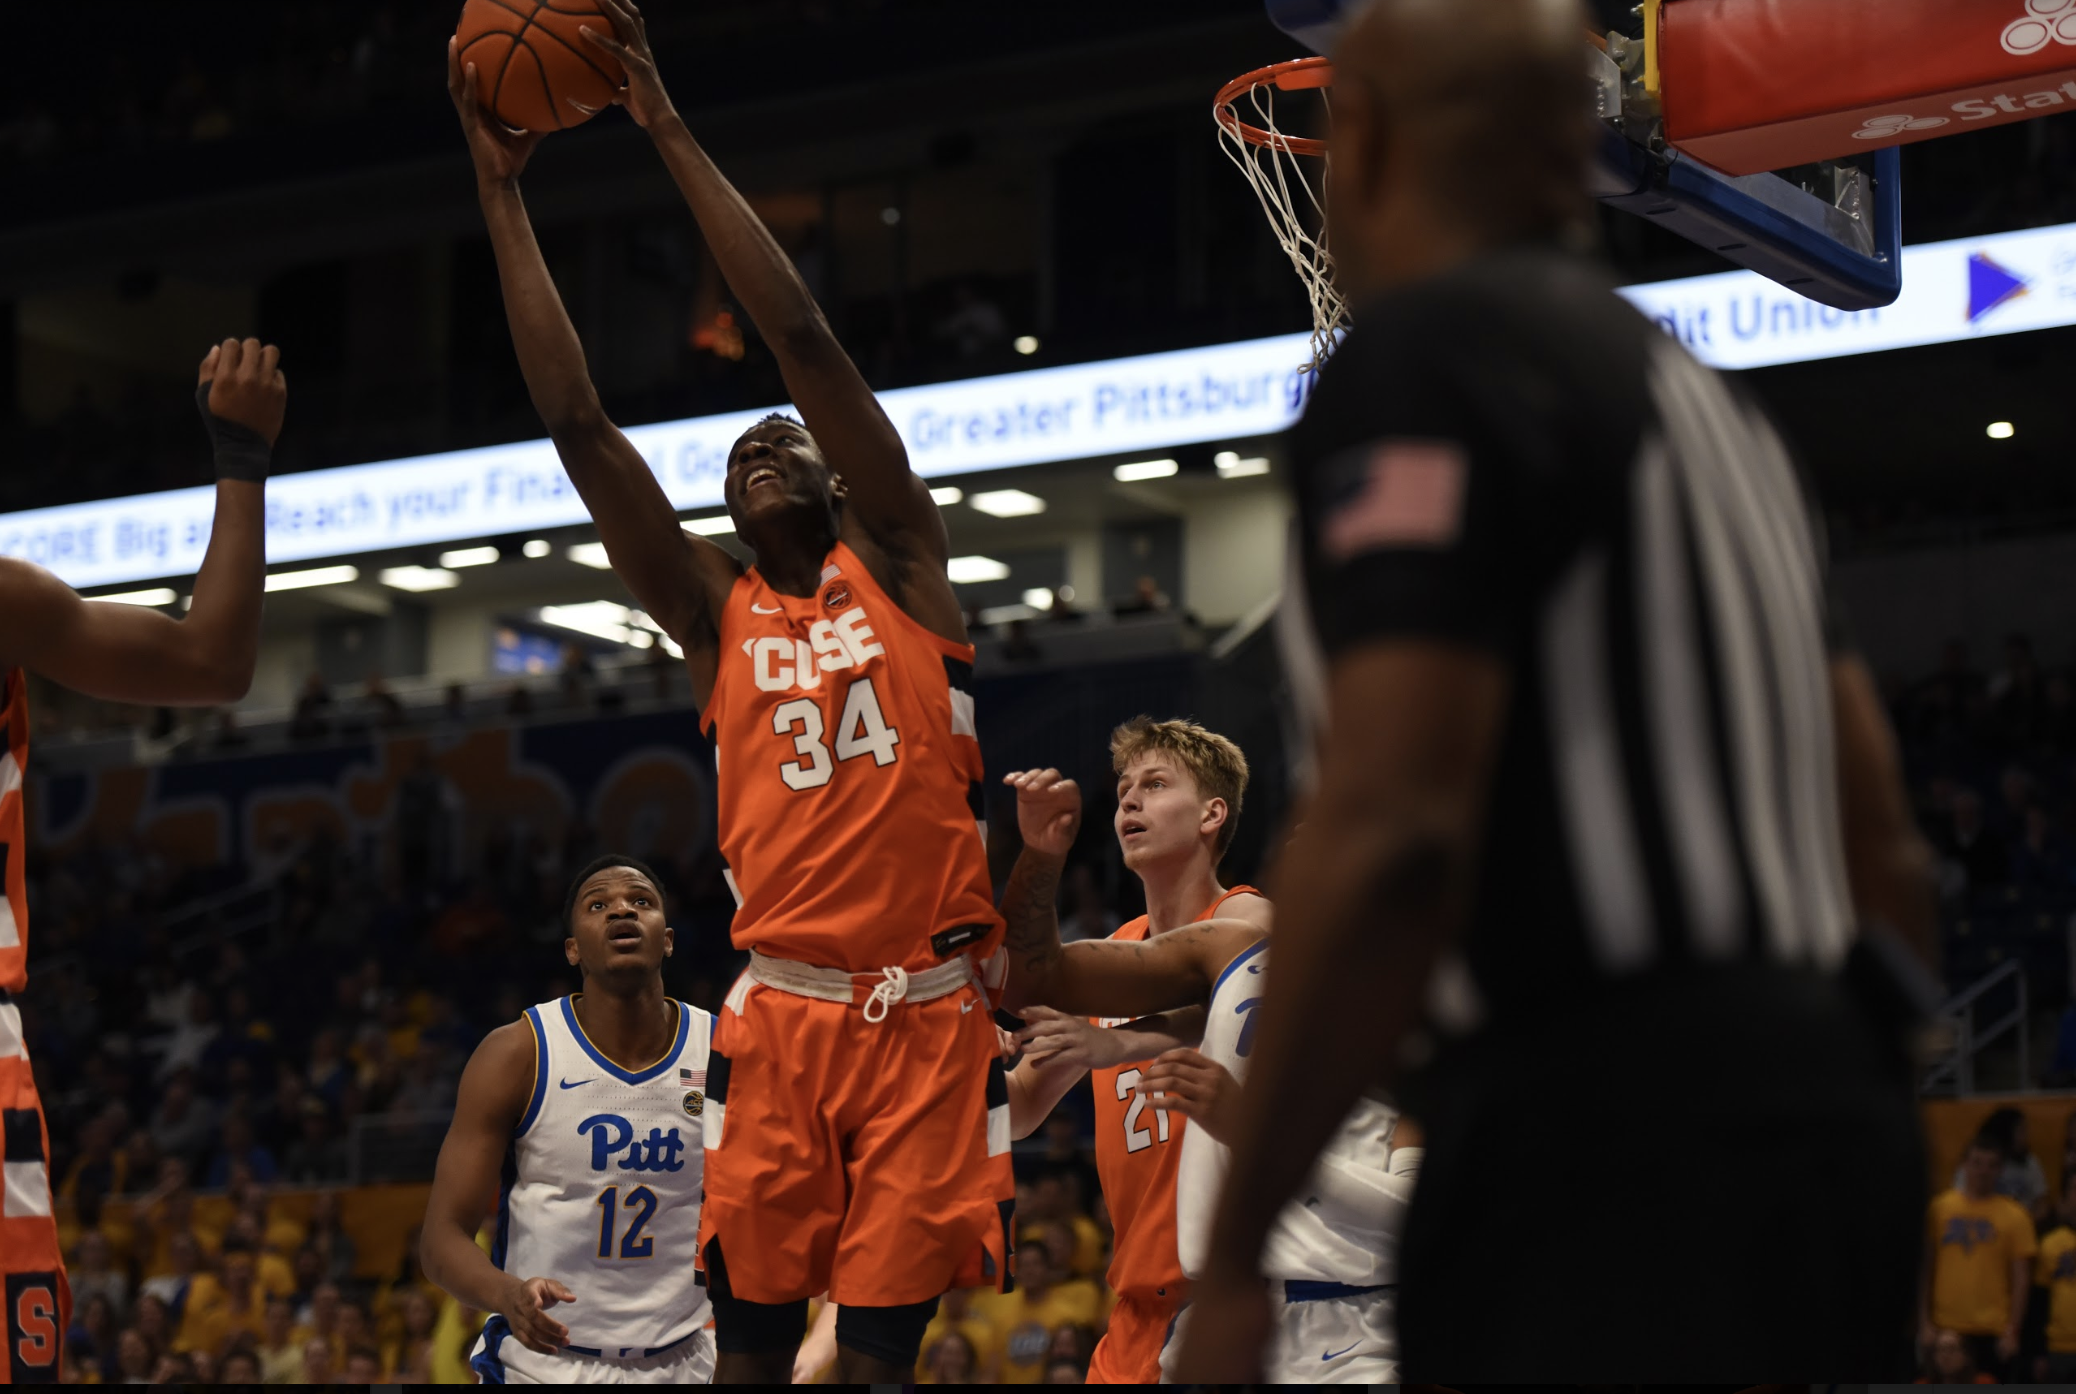 Bourama Sidibe soars for one of his 10 rebounds vs. Pitt on Wednesday, Feb. 26, 2020.